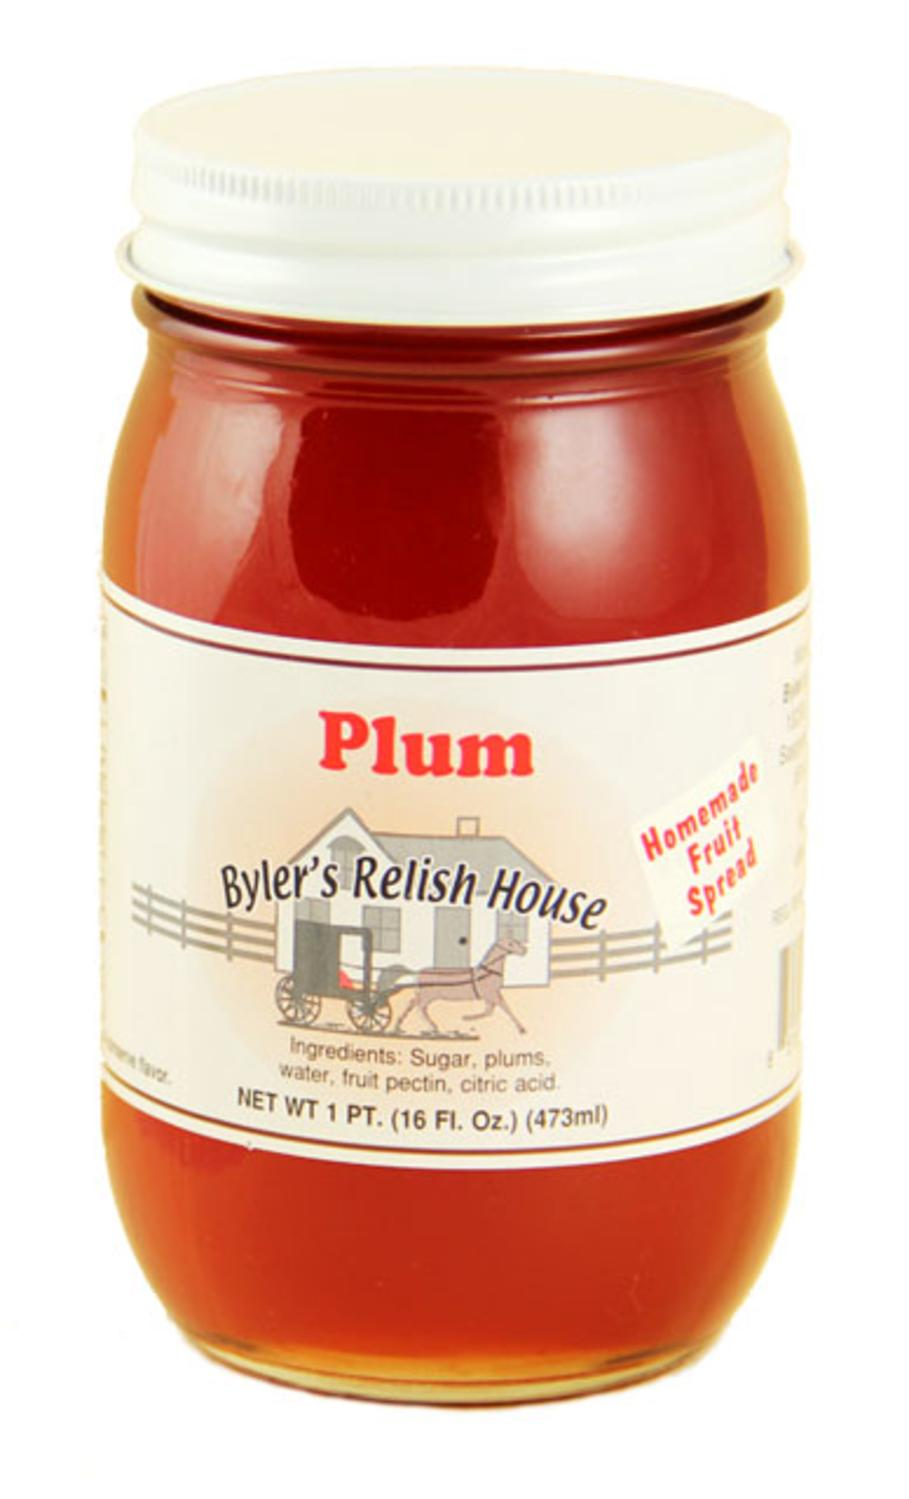 Byler's Relish House Homemade Amish Country Plum Jam Fruit Spread 16 oz. by Byler's Relish House